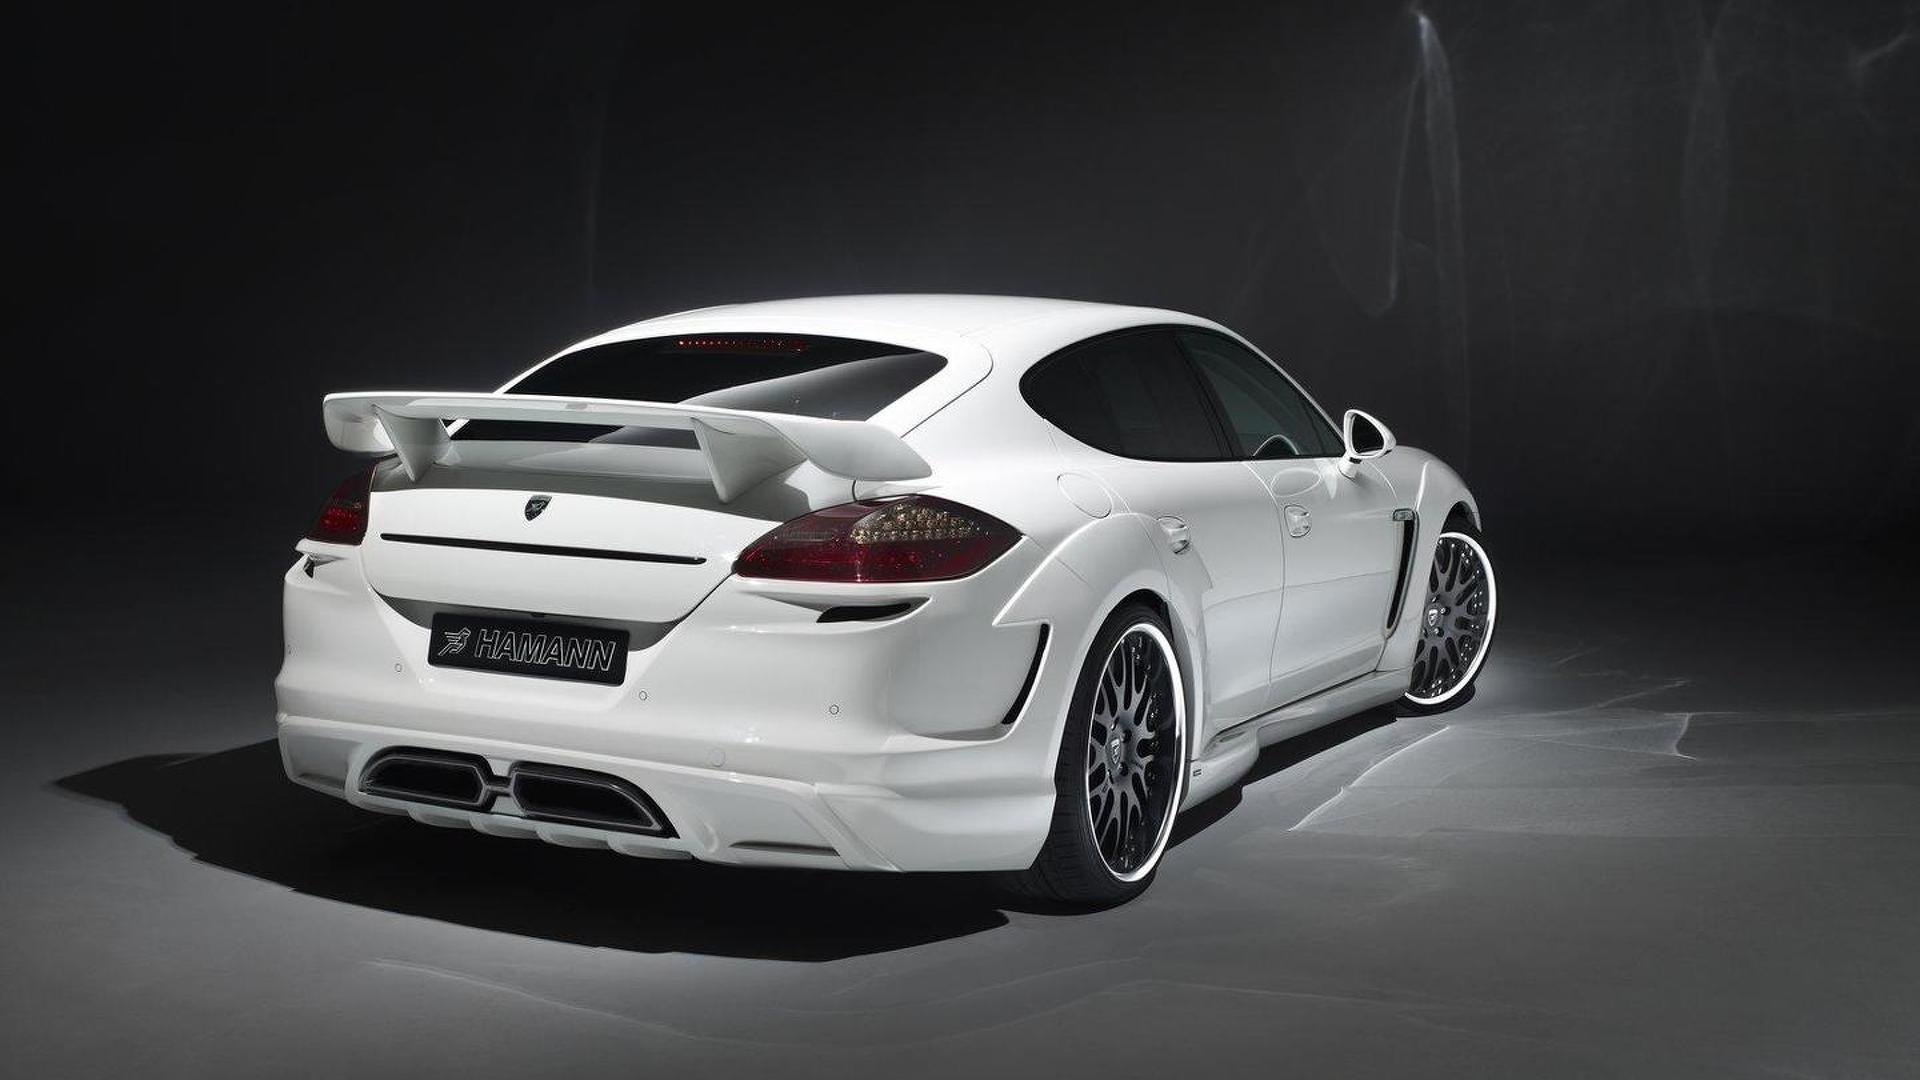 Hamann Cyrano spec'd - based on Porsche Panamera